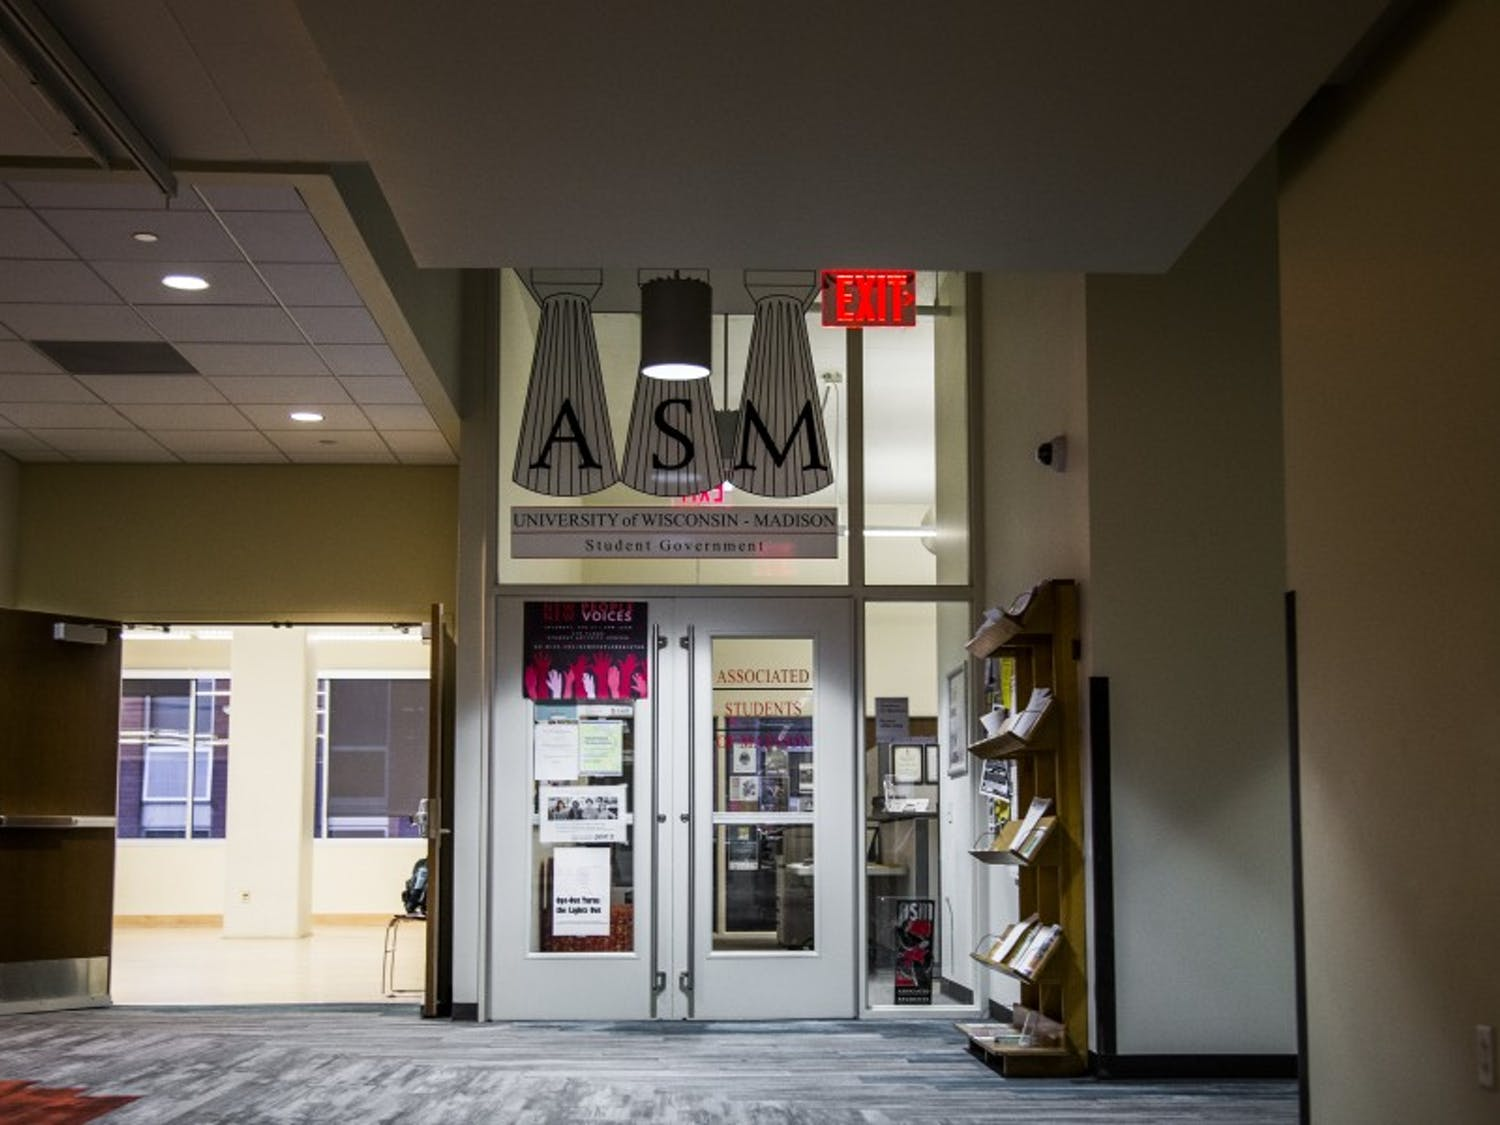 The Associated Students of Madison office will be filled with many new faces next year, some who campaigned with materials provided by a national conservative organization.